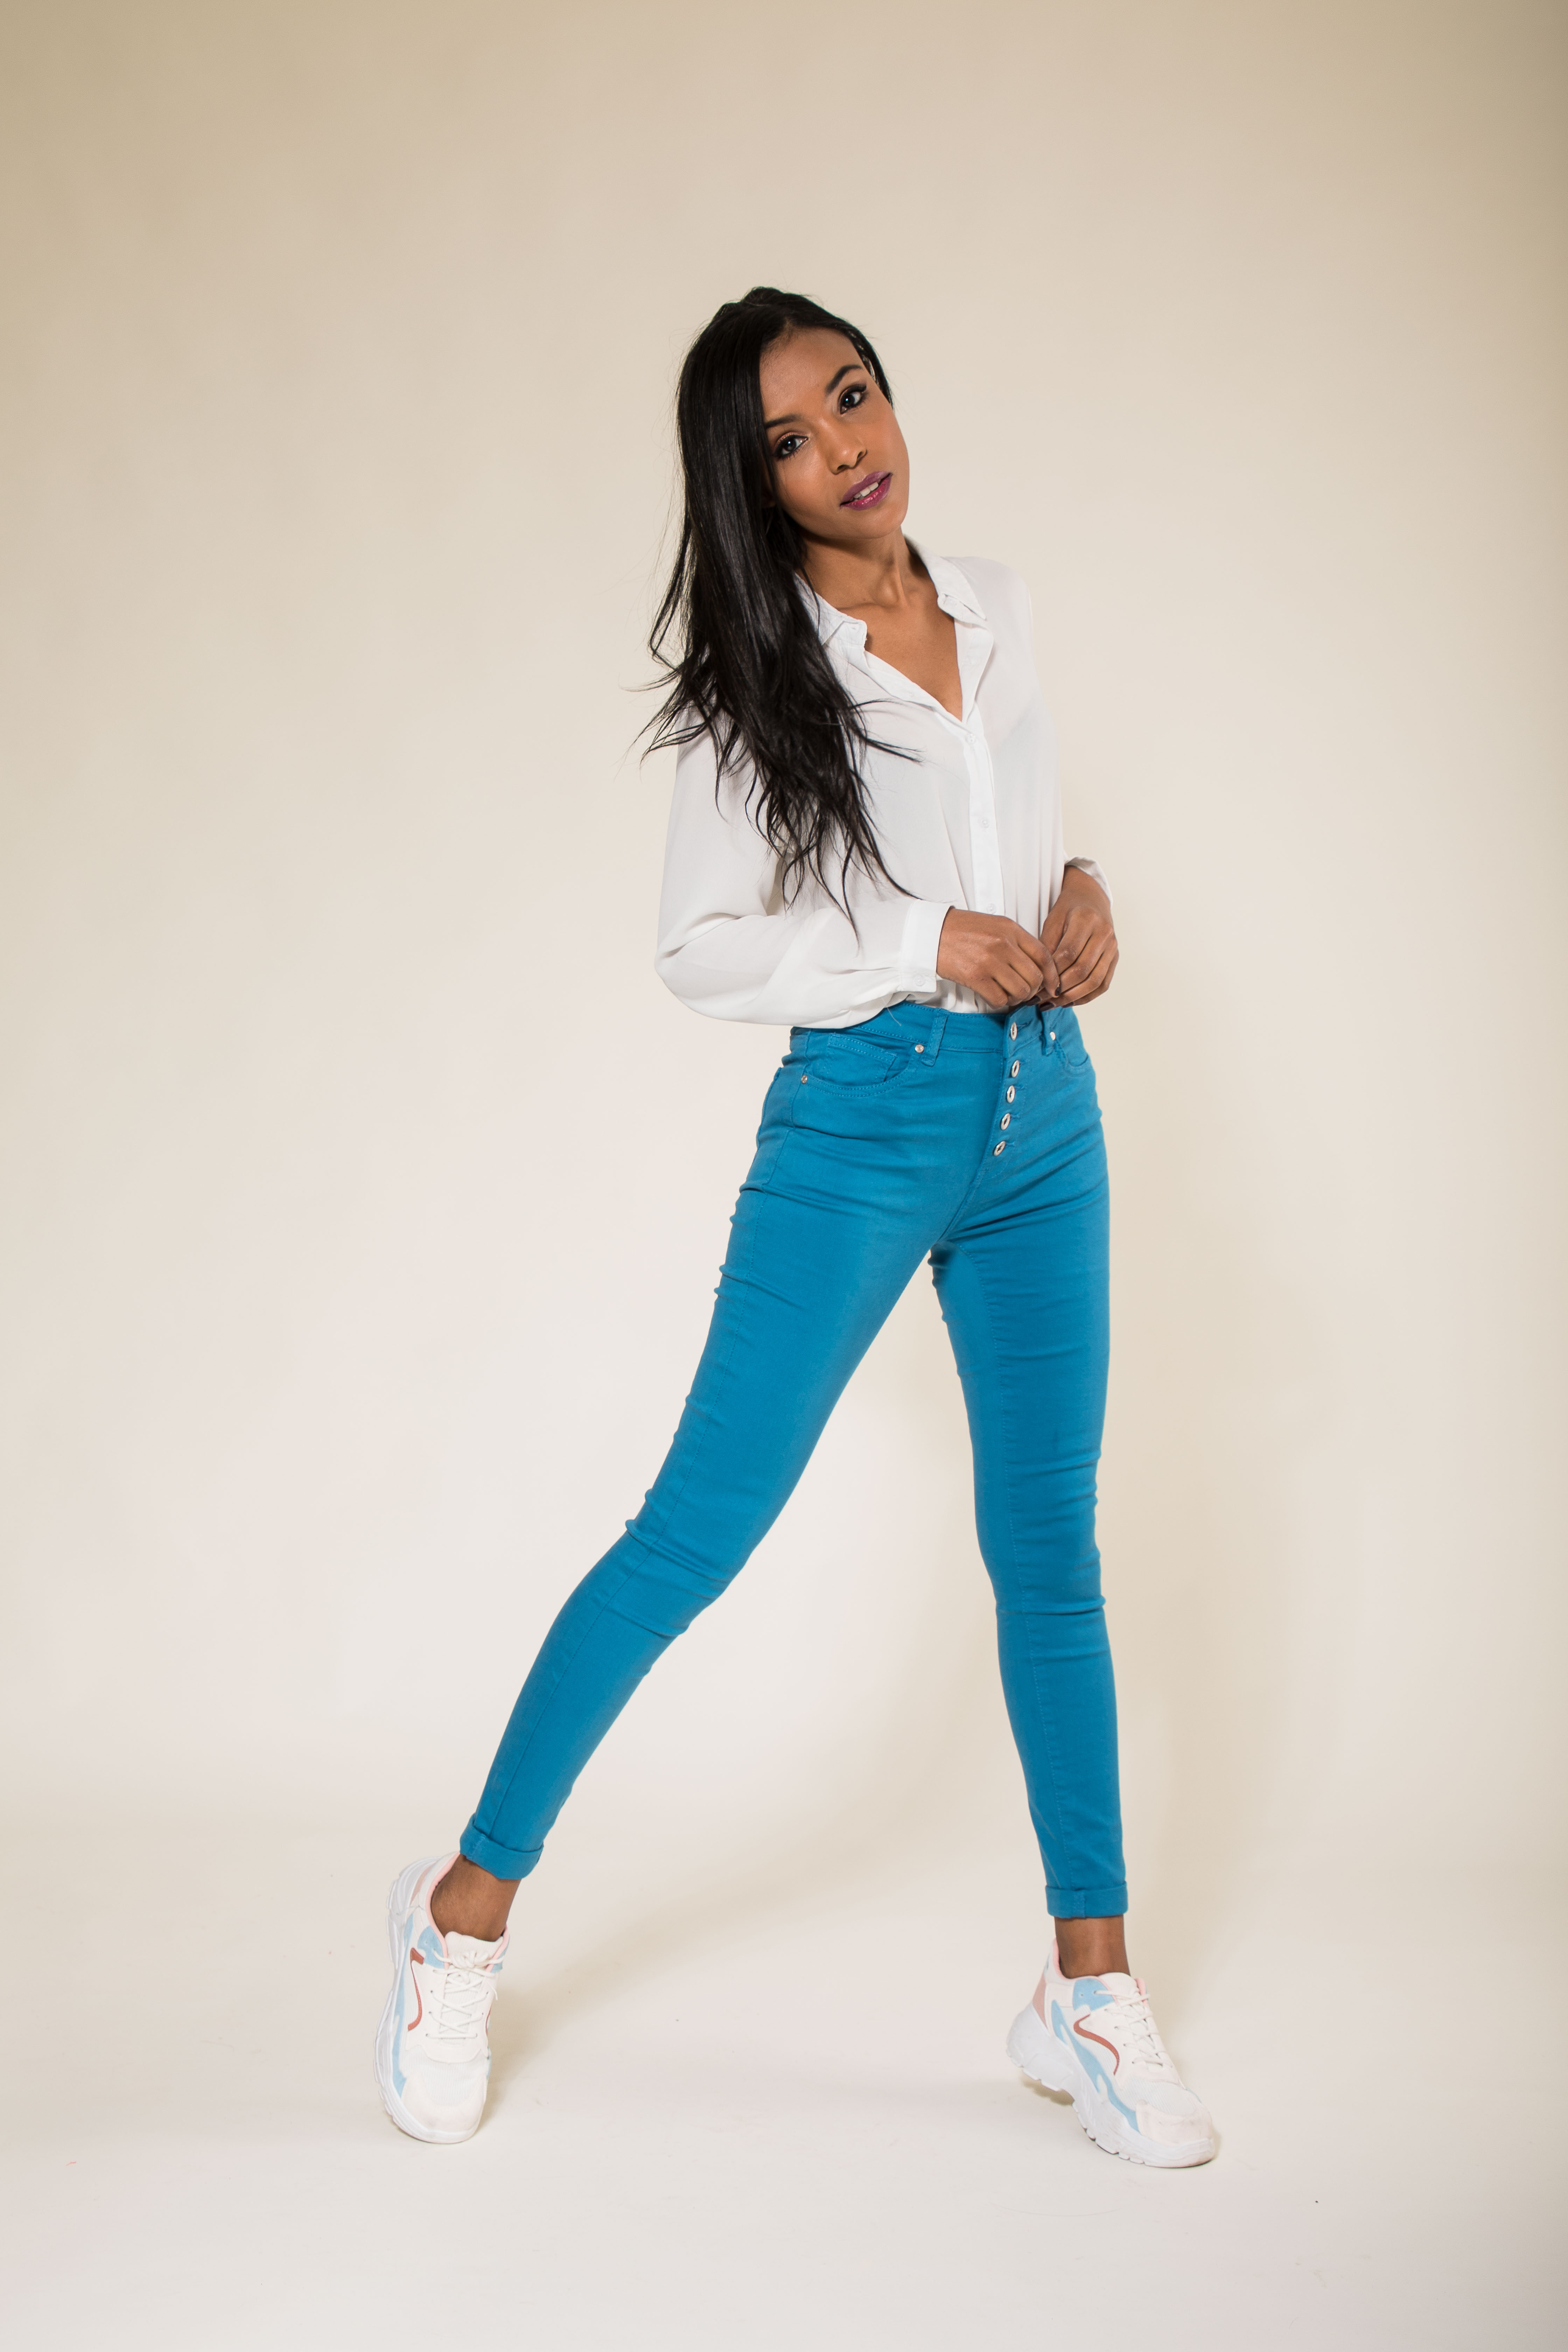 Women-High-Waisted-Jeans-Ladies-Coloured-Stretchy-jeggings-Pants-Size-6-14 thumbnail 13